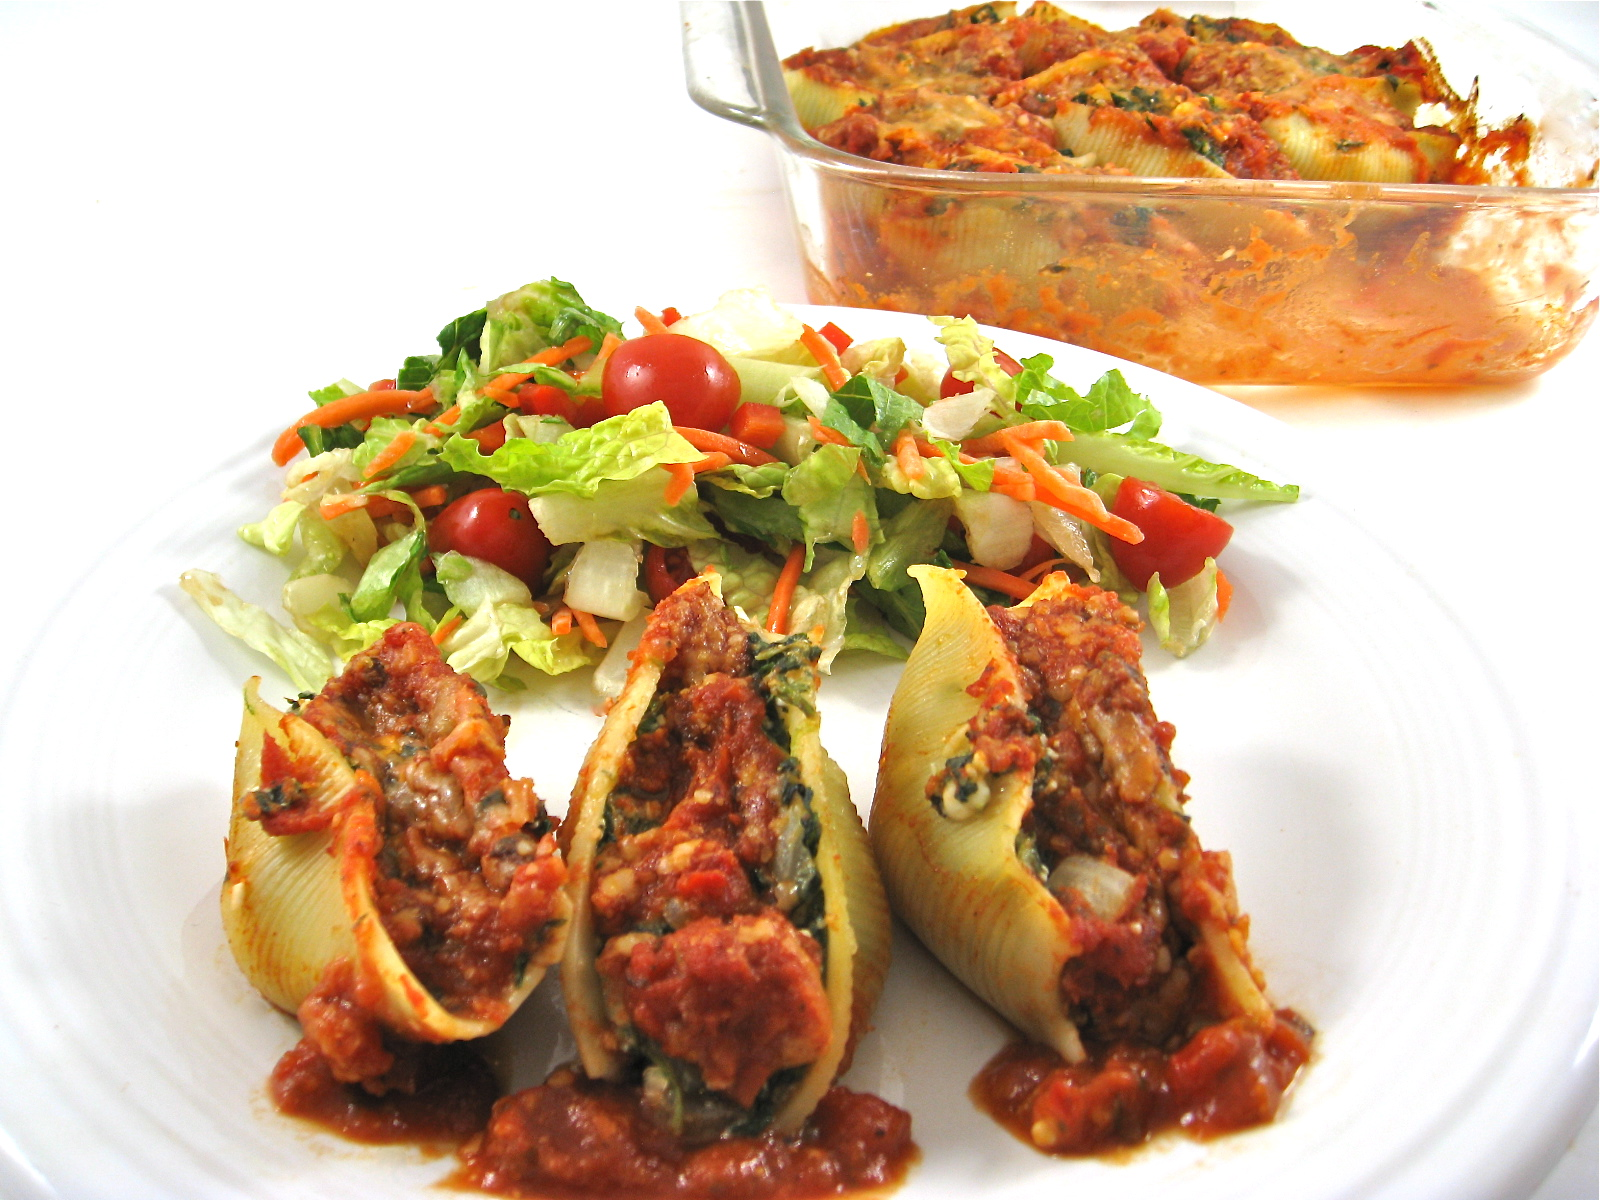 Meatless Stuffed Shells recipe